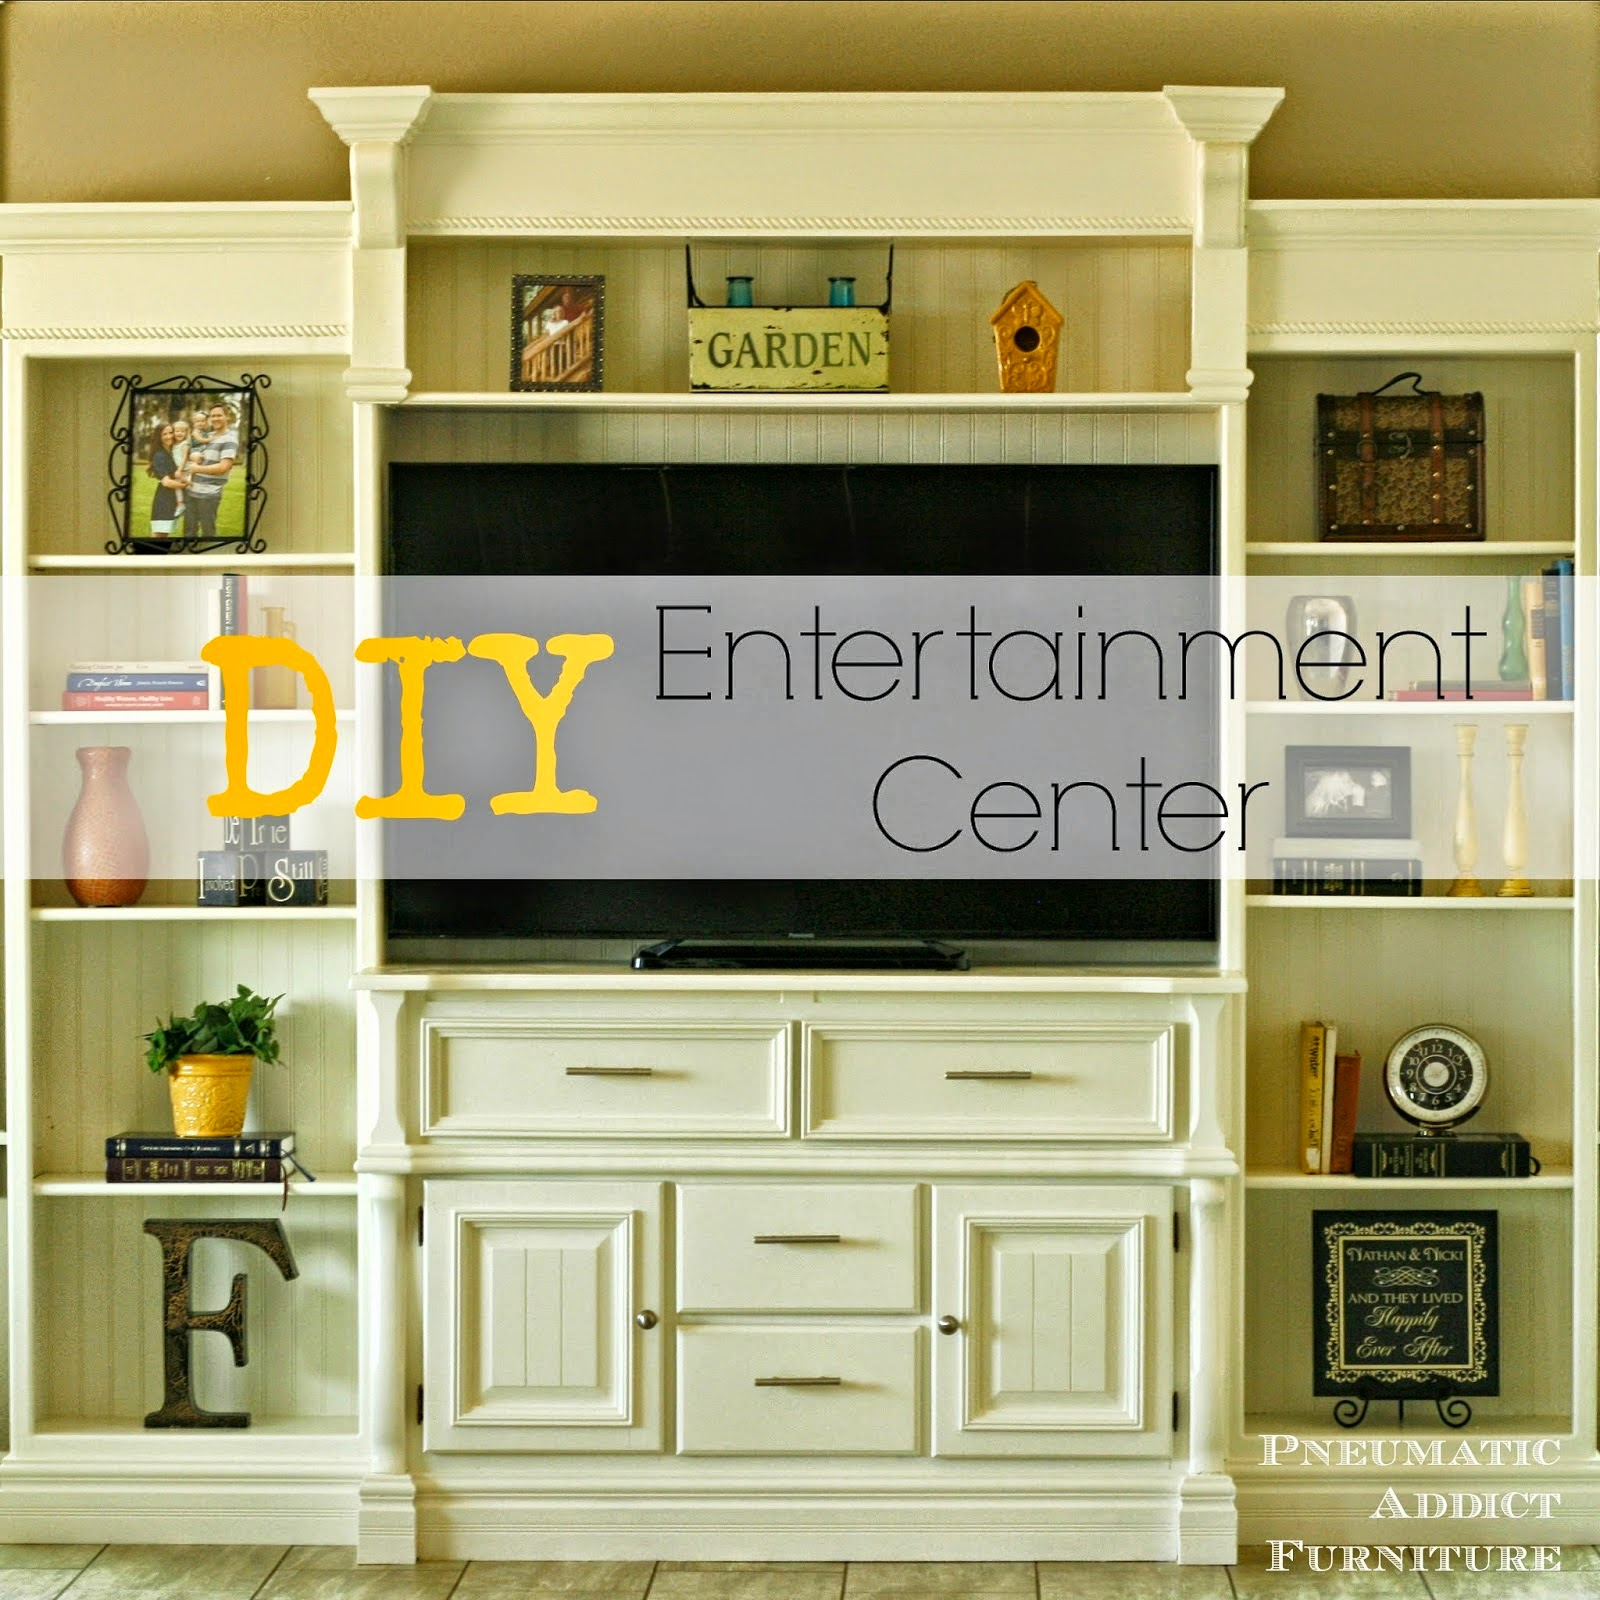 Pneumatic Addict shared her Diy Entertainment Center featured at One MoreTime Events.com